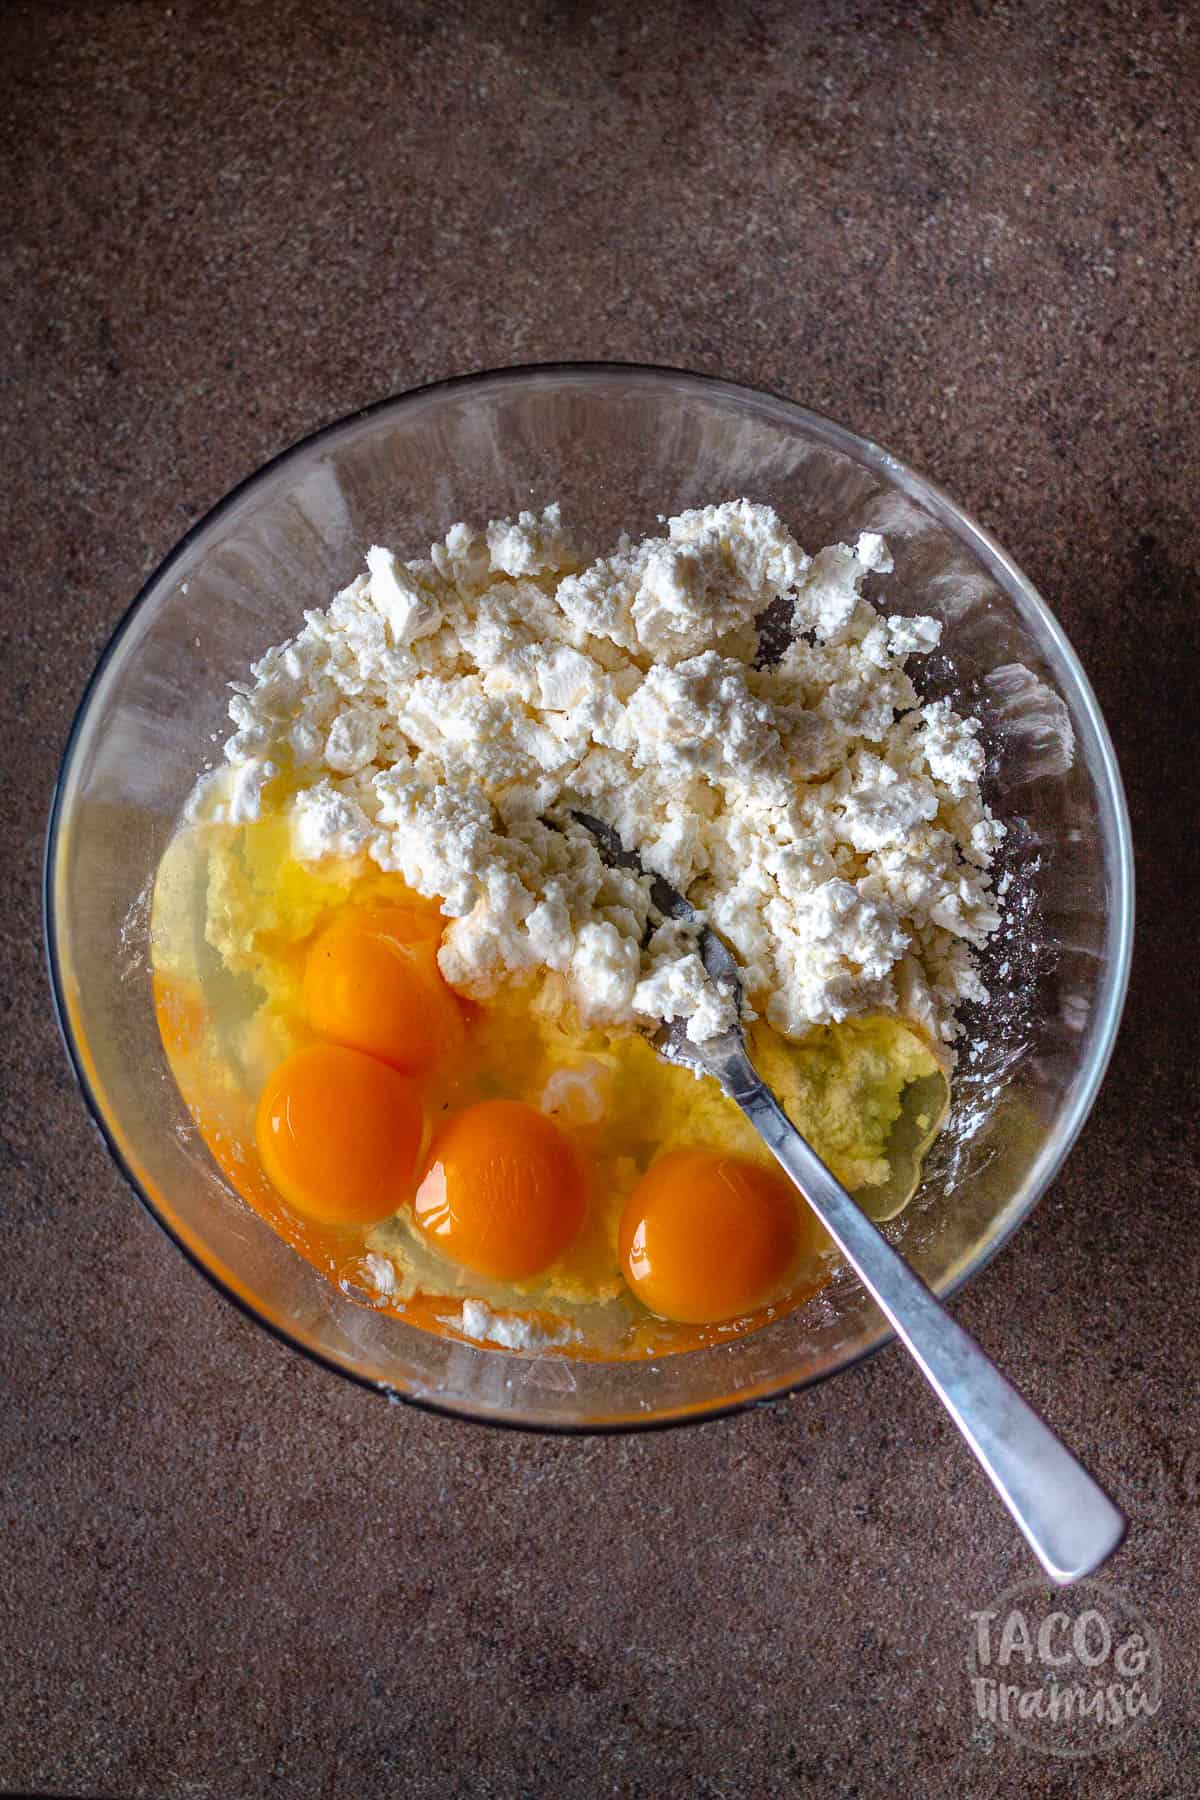 crumbled cheese and eggs in a bowl